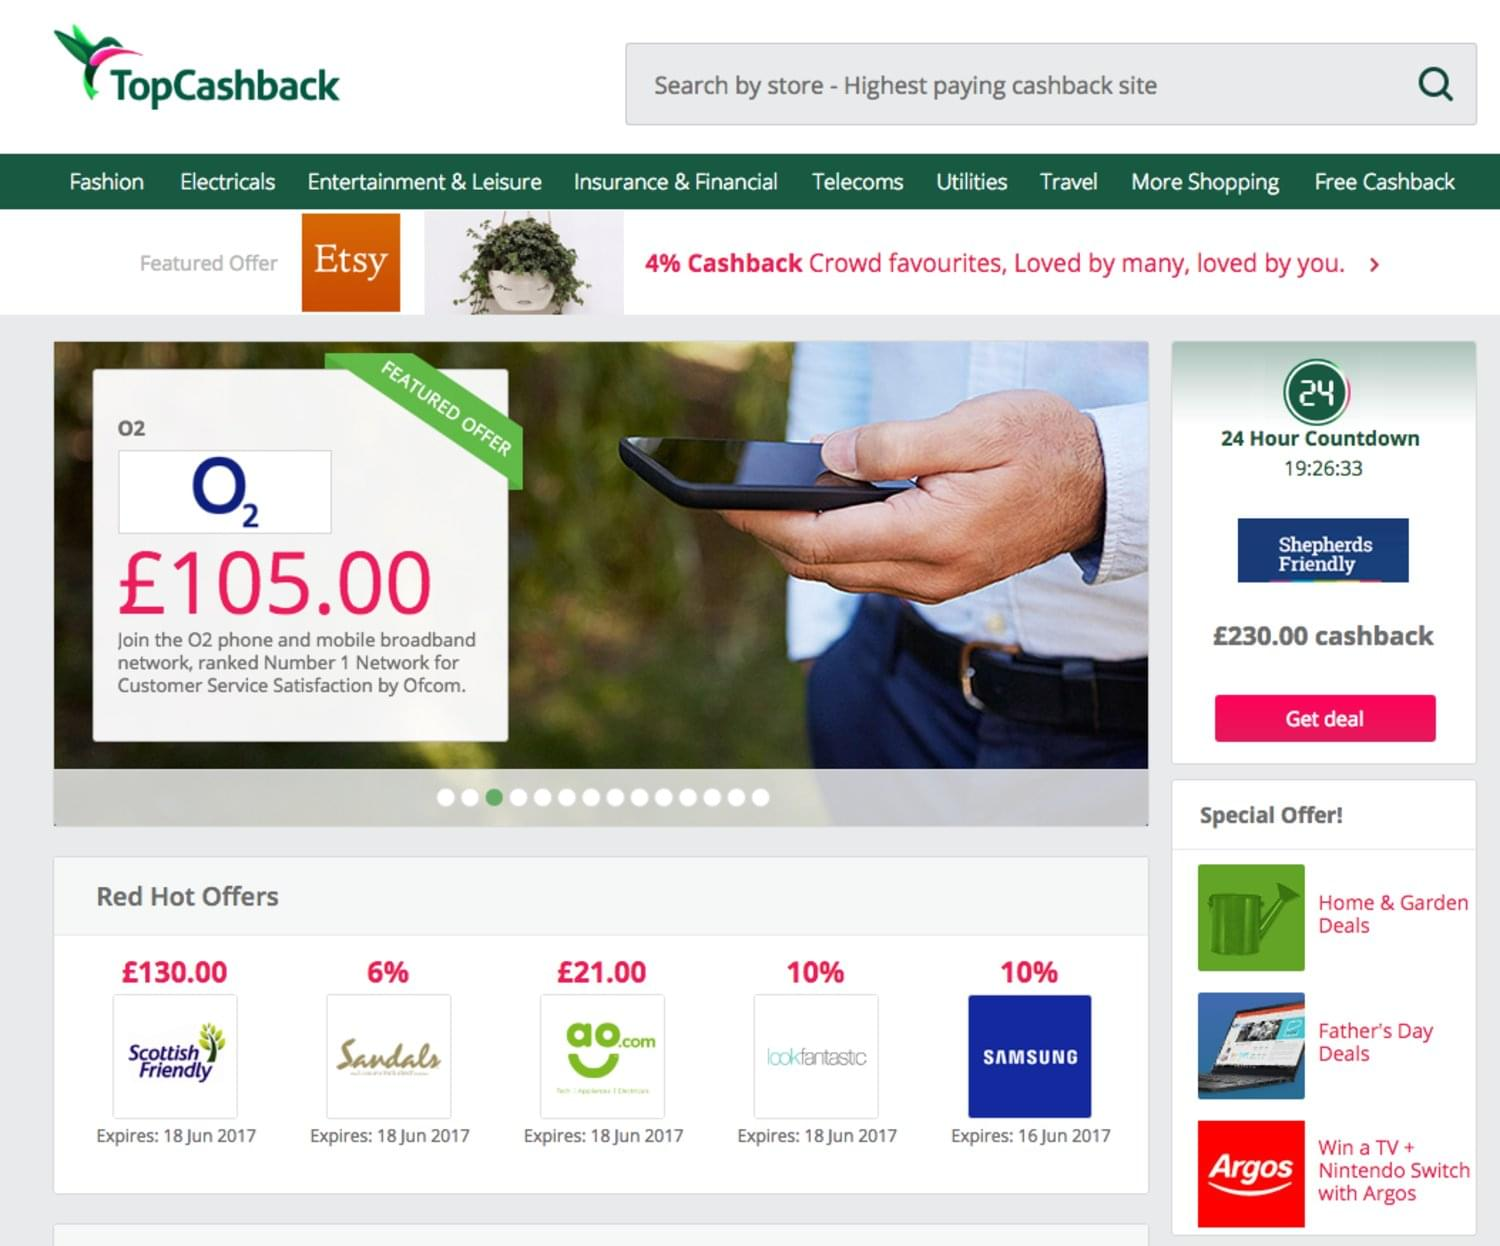 How to save money with TopCashback